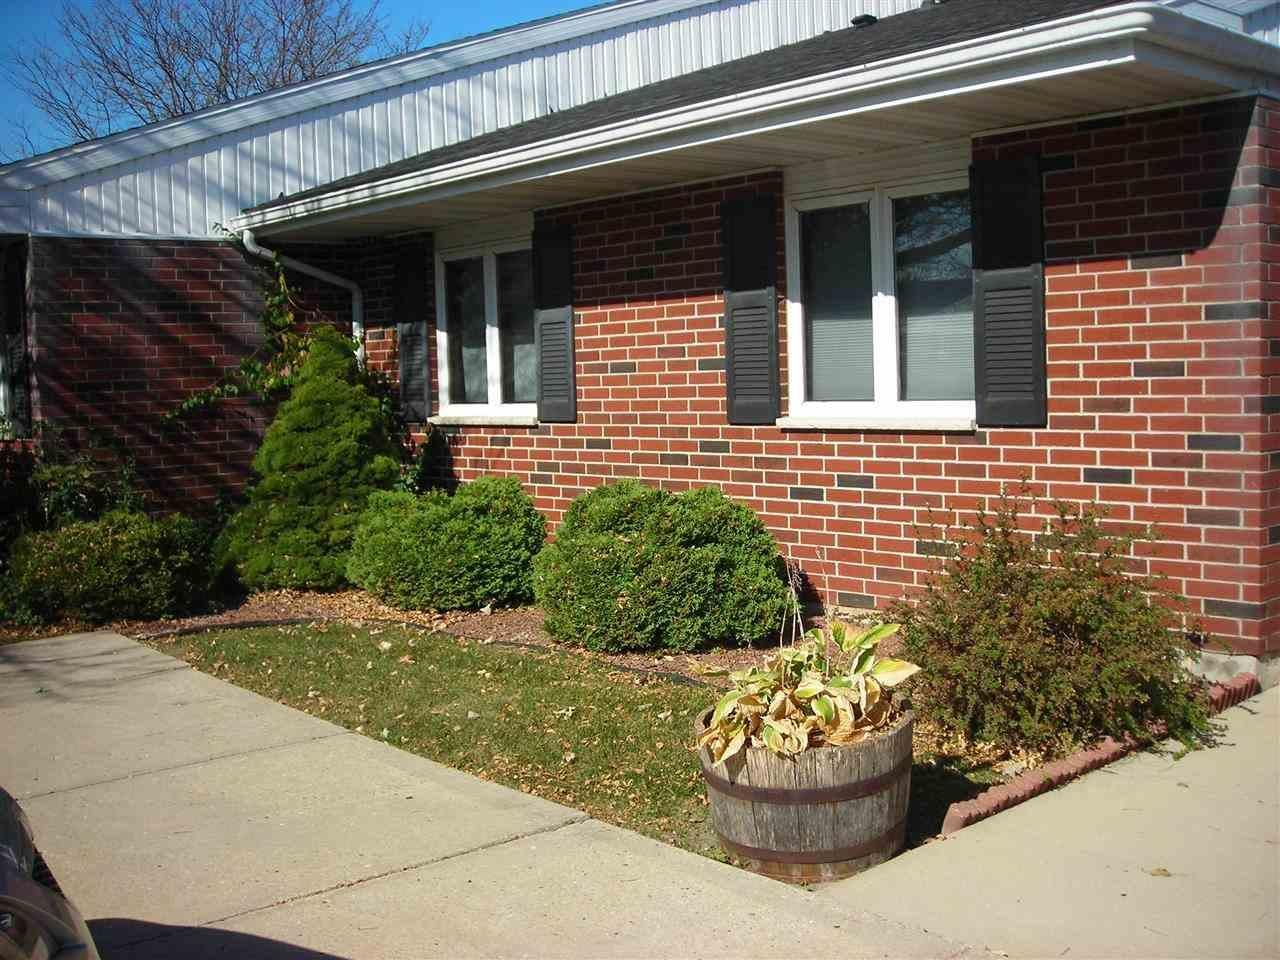 MLS 1708294 - 7049 Watts Rd., Madison, WI 53719: Great Location ...